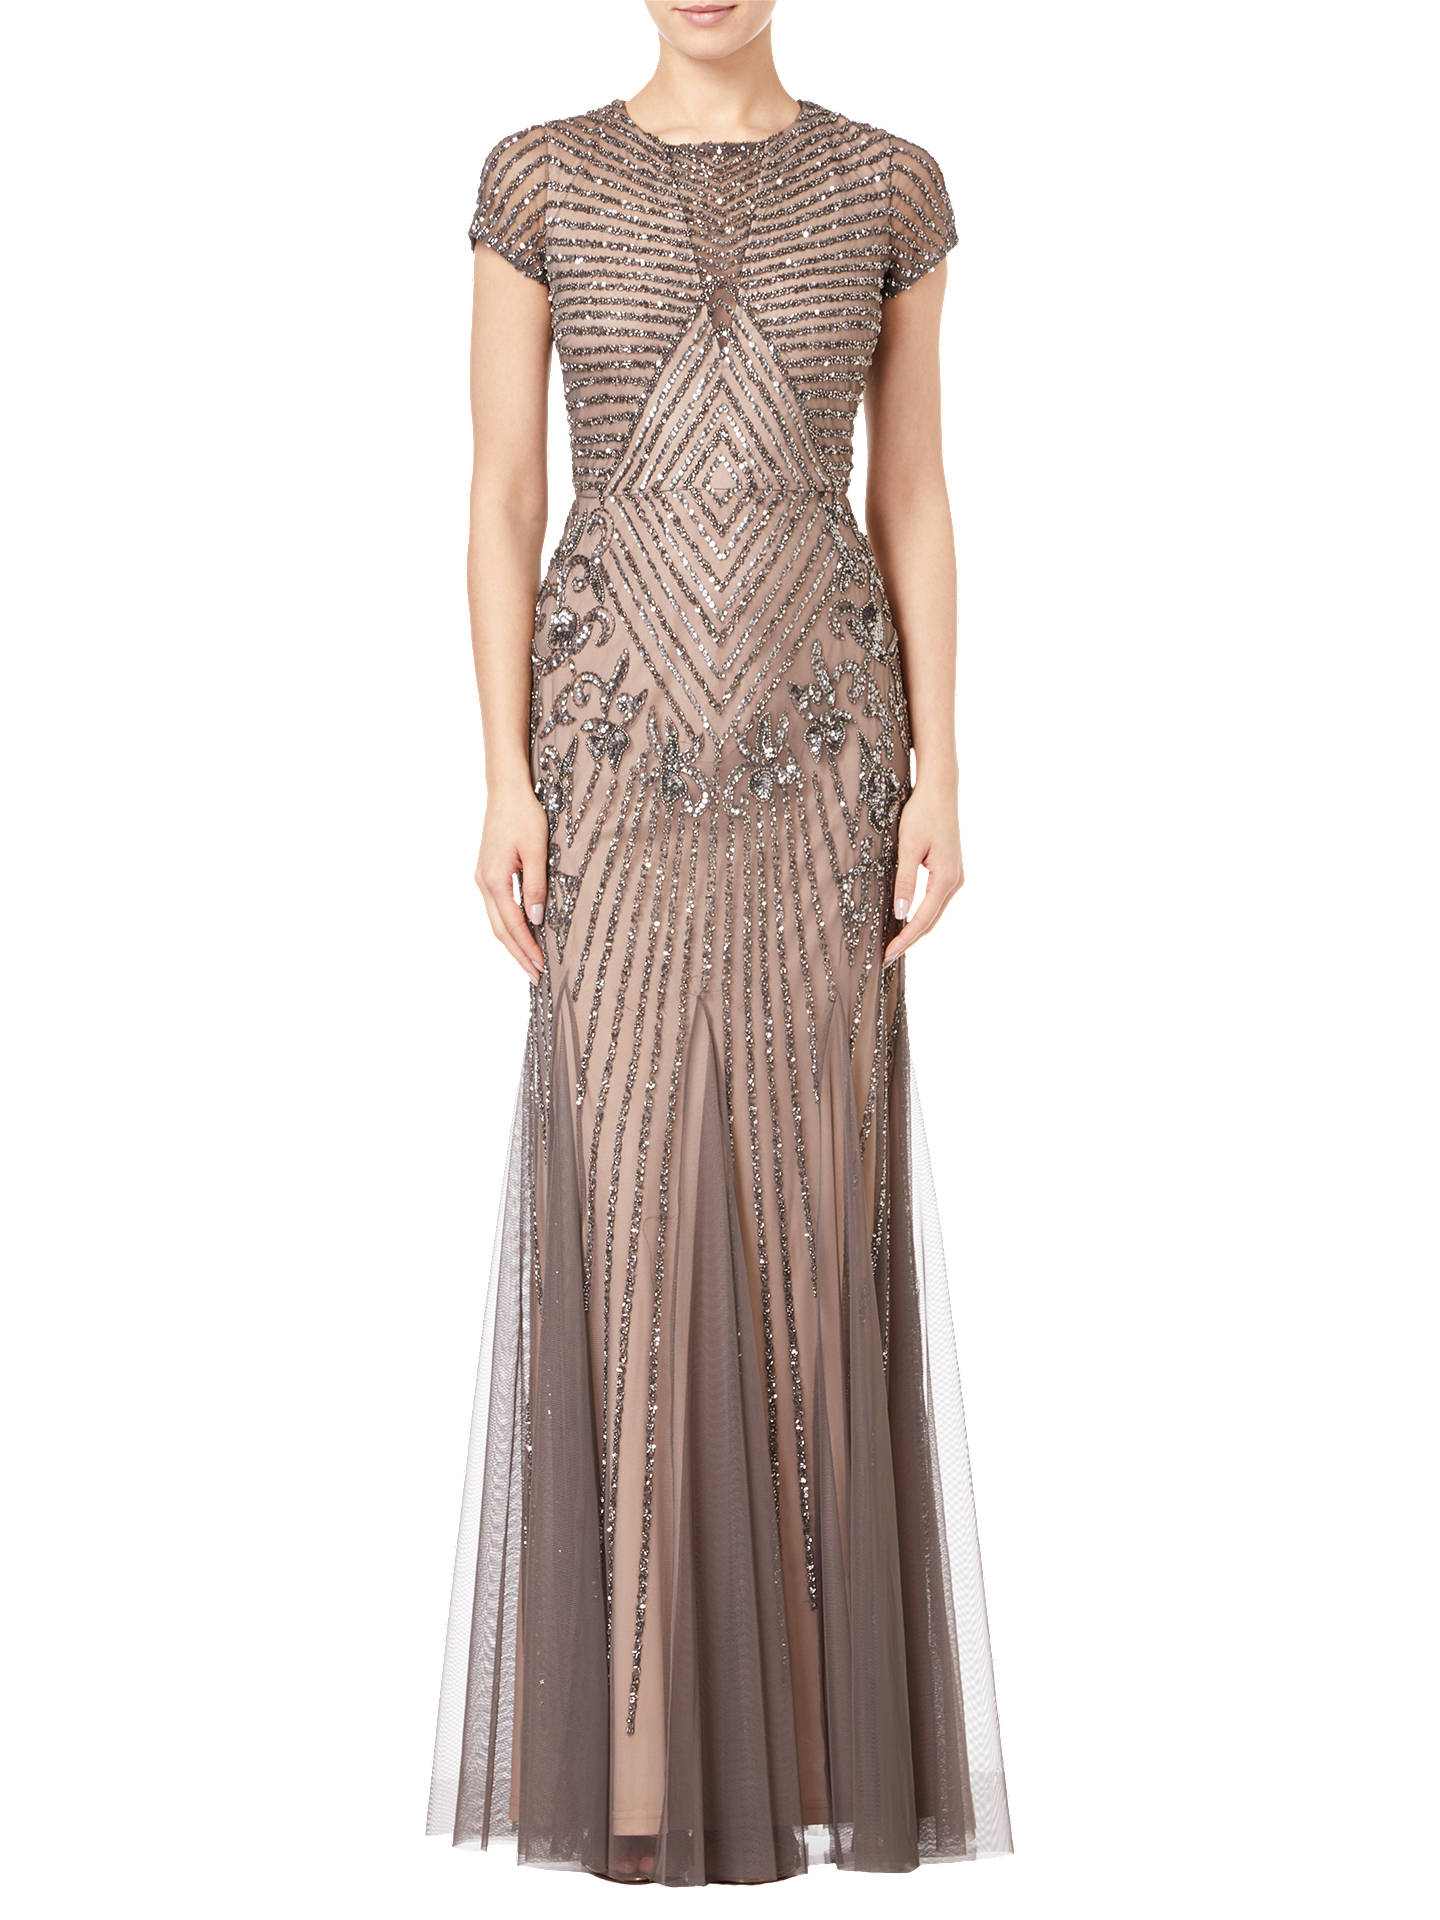 7fa058d7d6fd Buy Adrianna Papell Short Sleeve Beaded Godet Gown, Lead/Nude, 8 Online at  ...